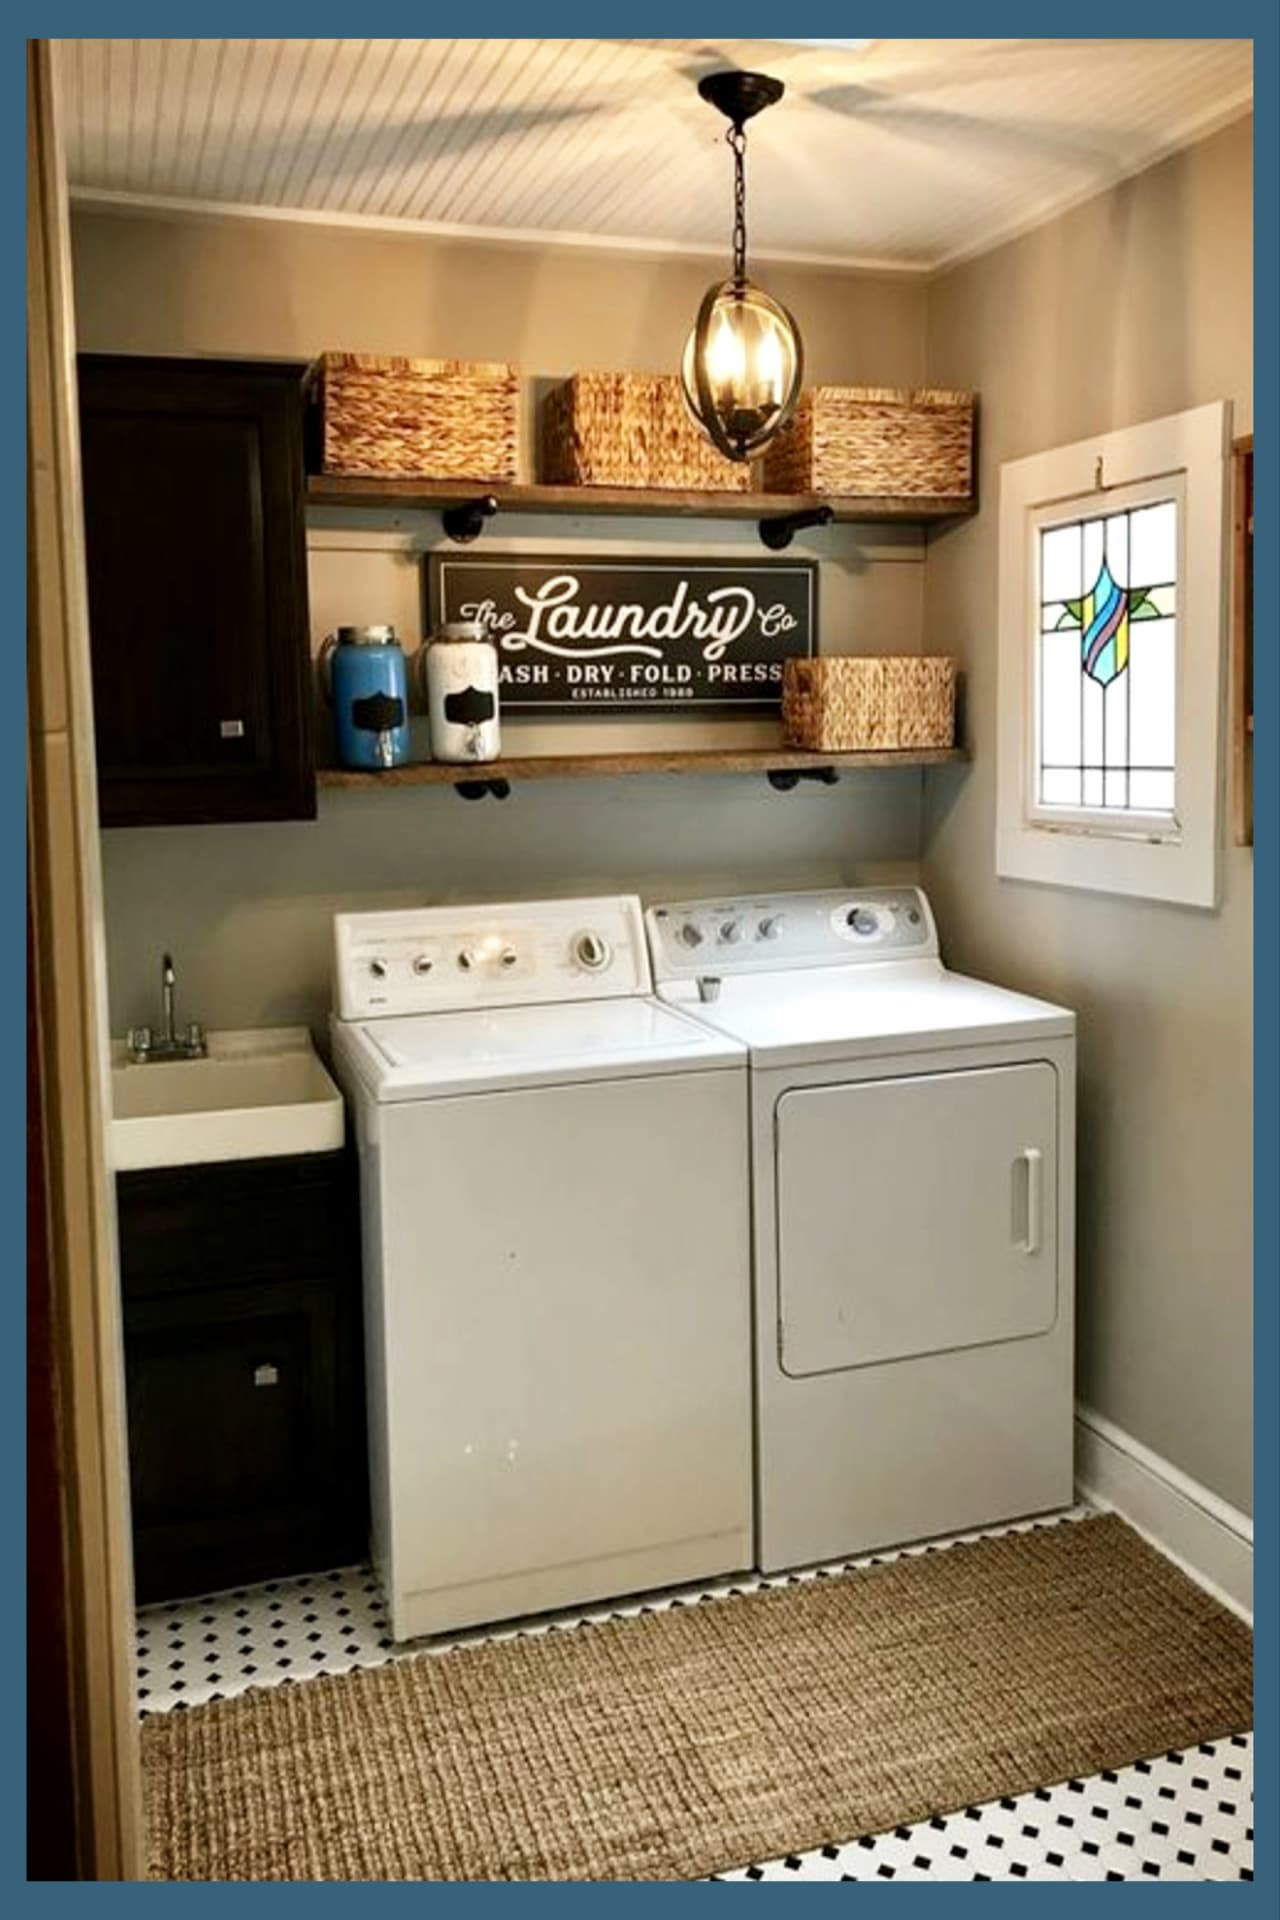 Small Laundry Room Ideas Space Saving Ideas For Tiny Laundry Rooms Creative And Simple Diy